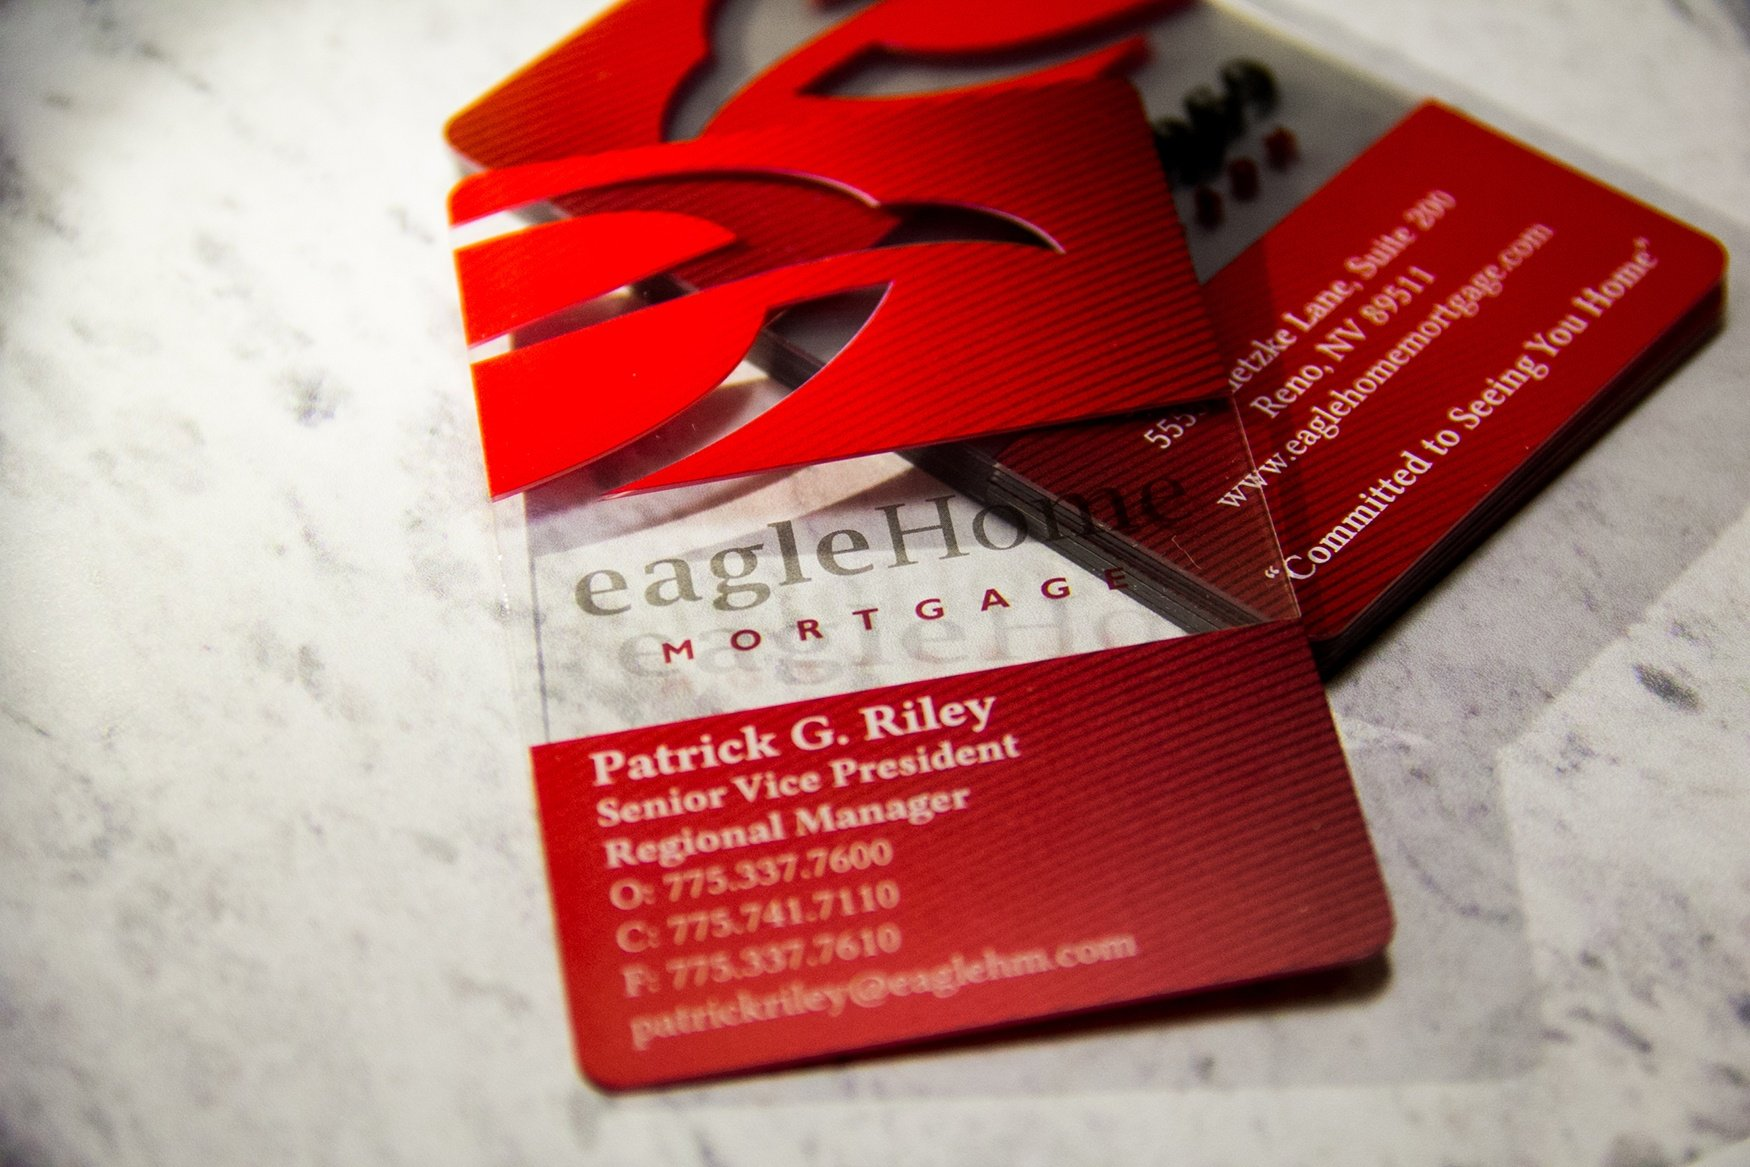 Eagle Home Mortgage Business Cards